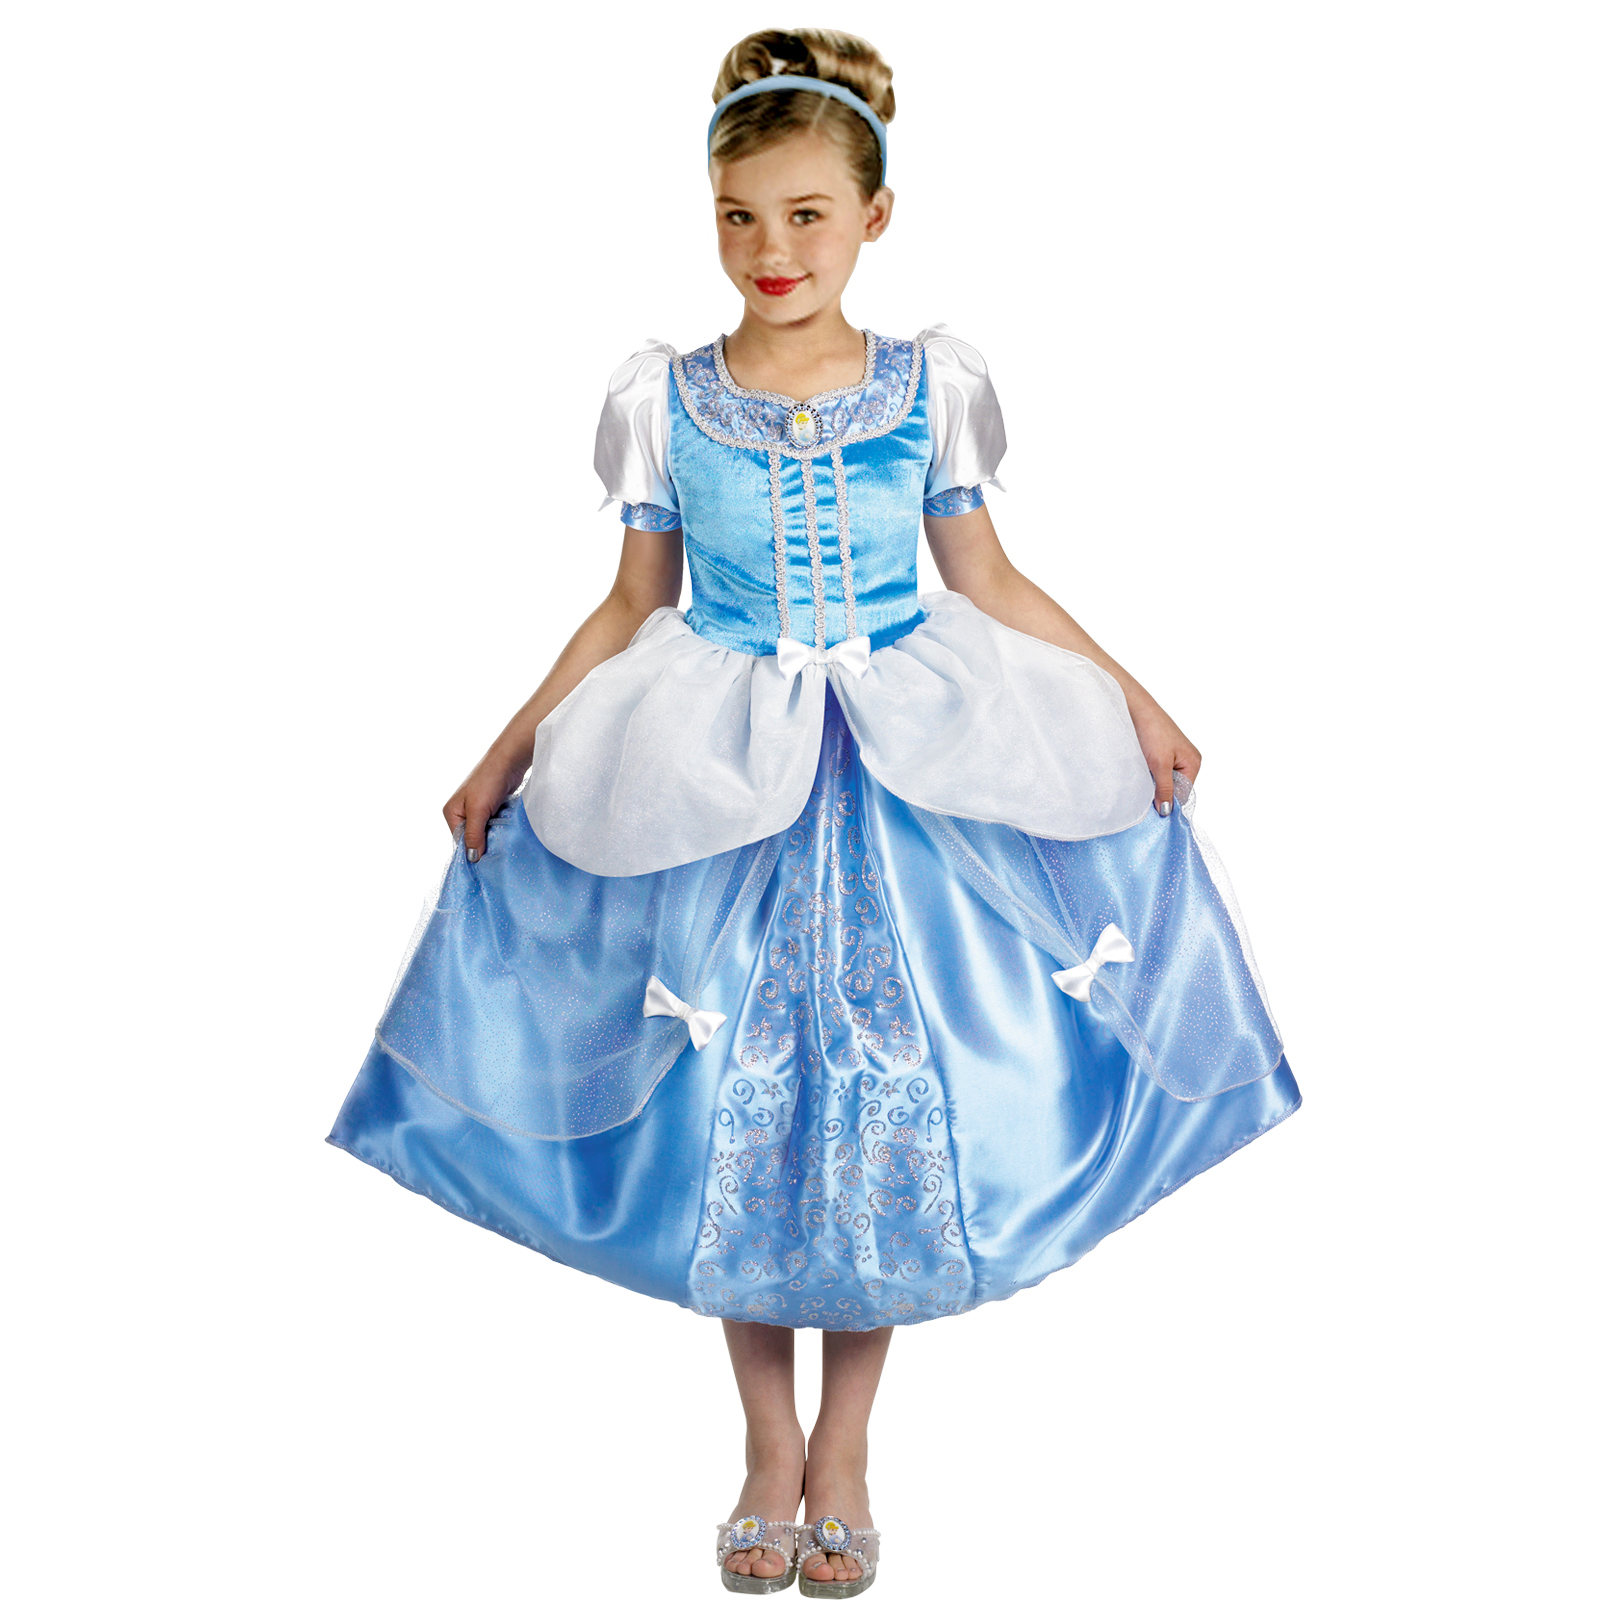 Cinderella Child Deluxe - Disney Costumes for kids